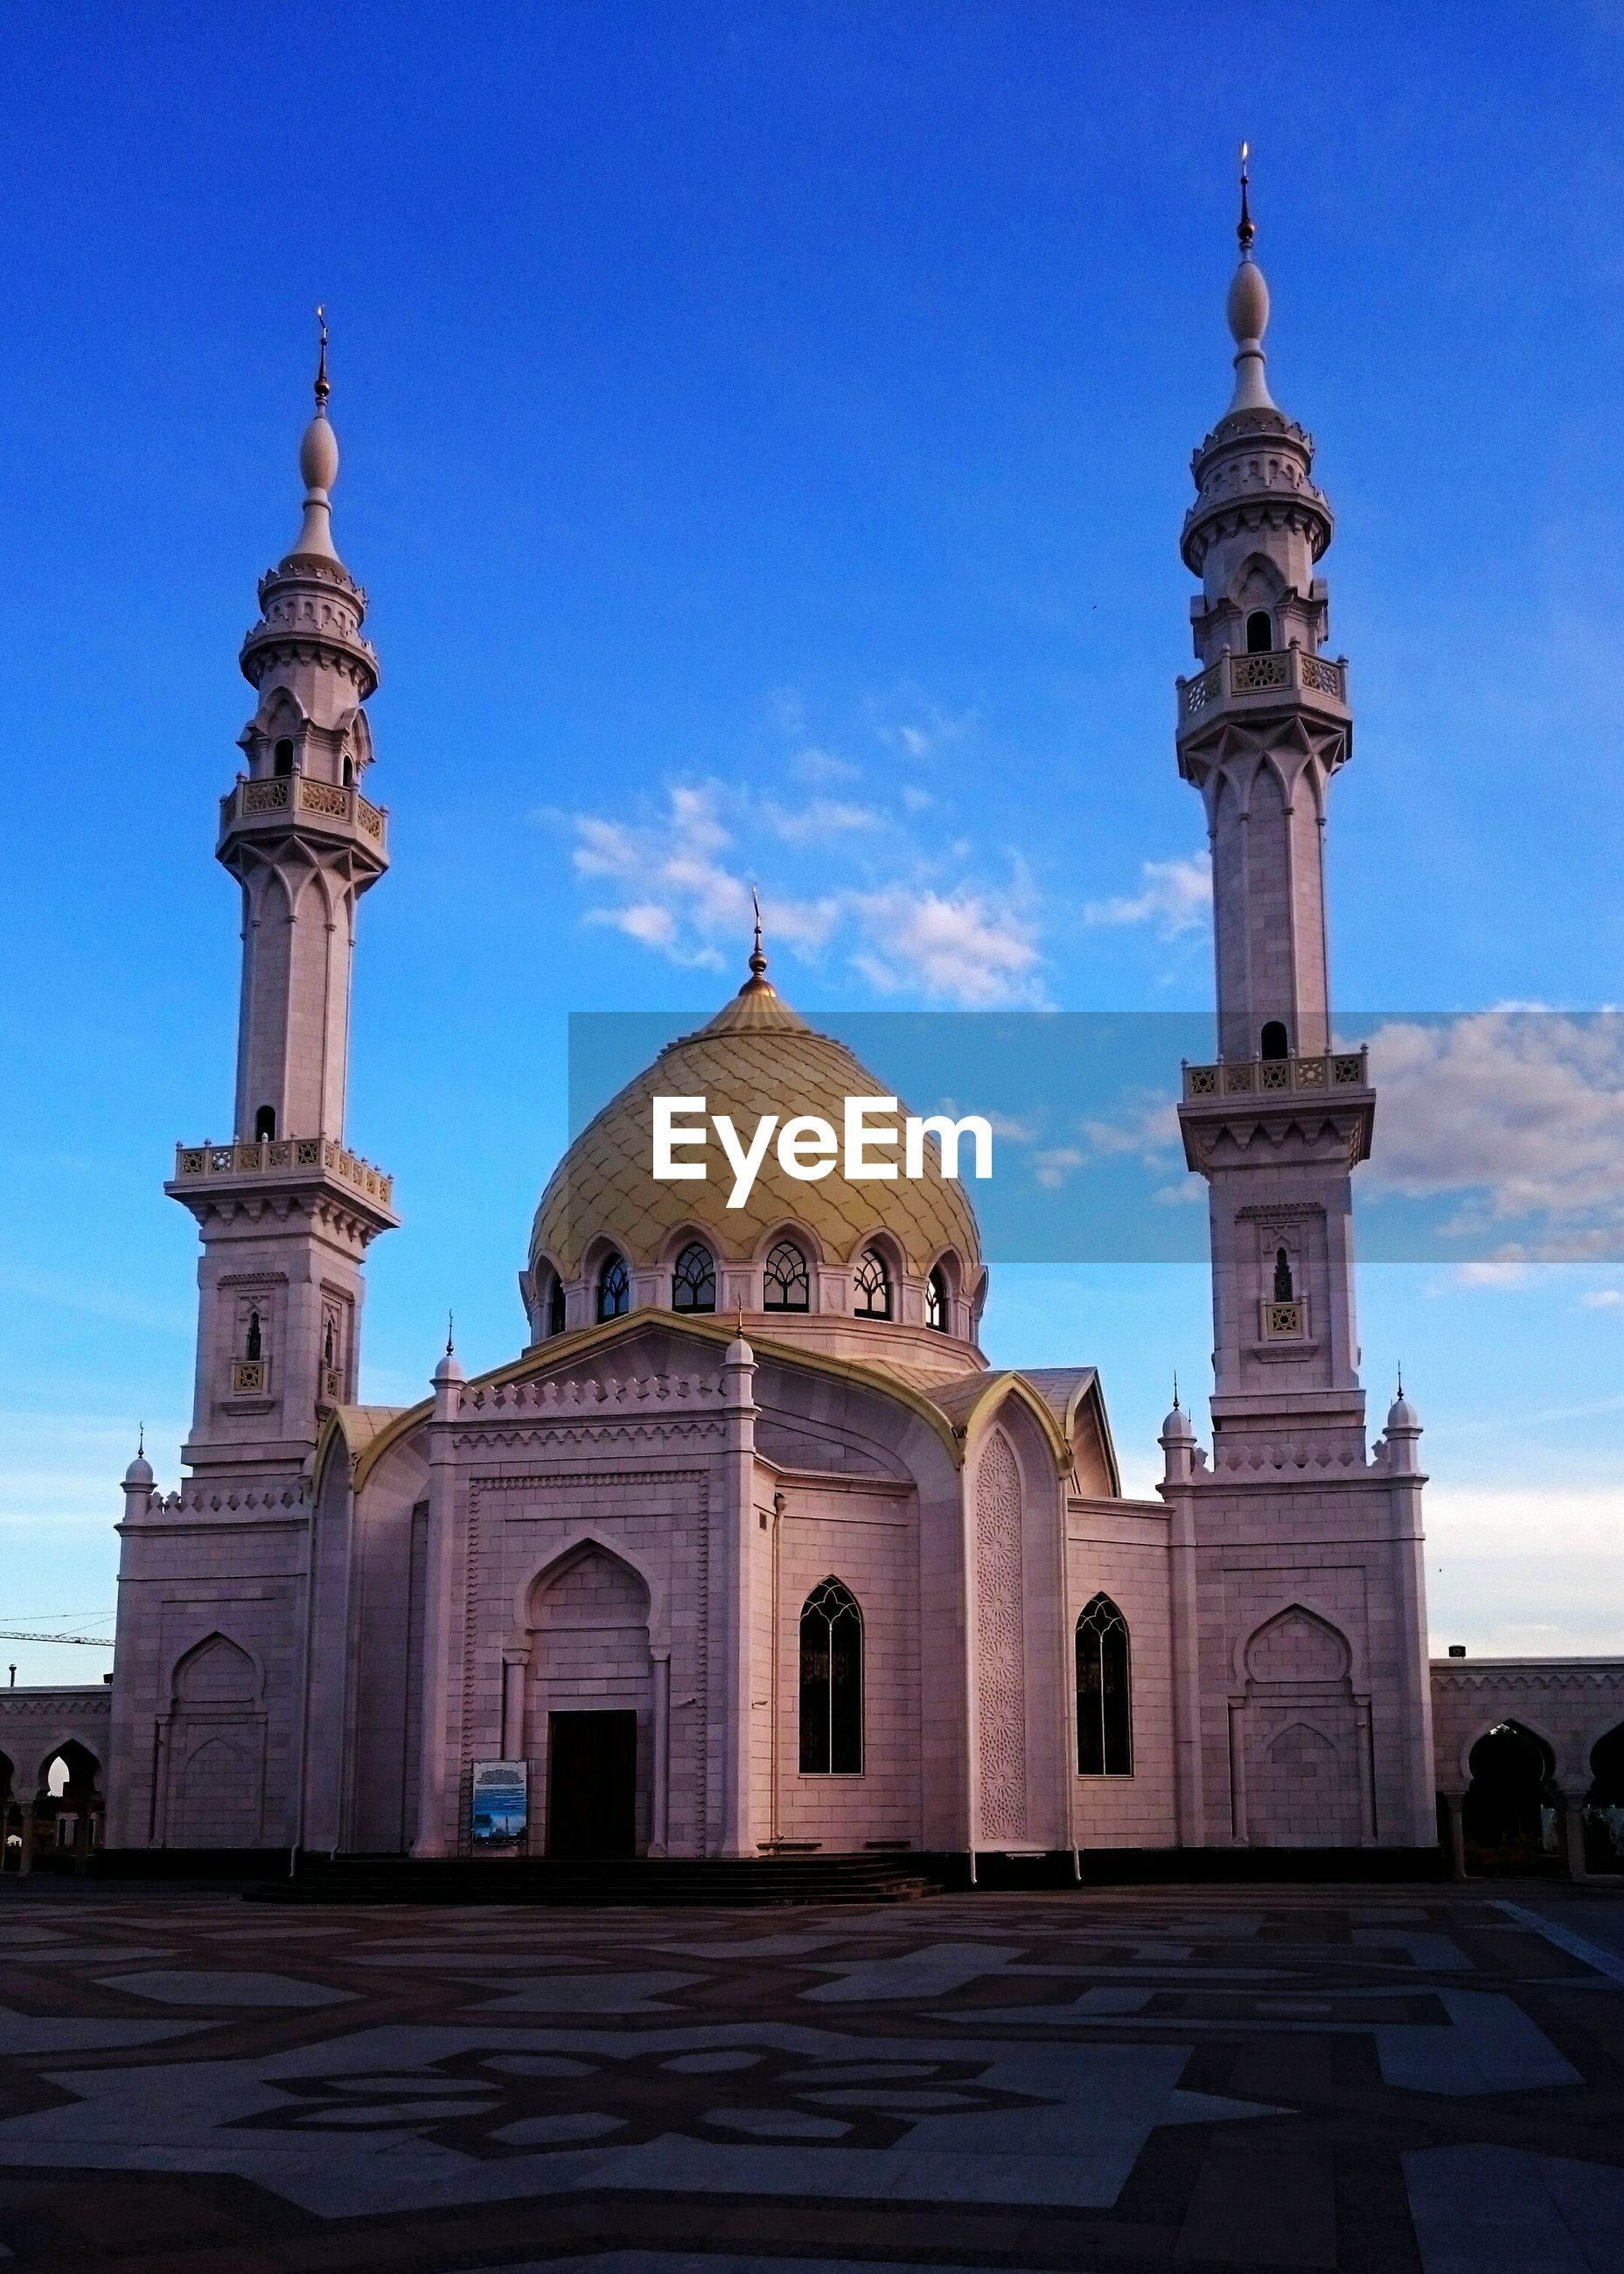 architecture, built structure, dome, building exterior, travel destinations, facade, history, blue, tourism, arch, famous place, place of worship, mosque, monument, tower, memories, sky, entrance, the past, outdoors, international landmark, in front of, day, exterior, culture, taj mahal